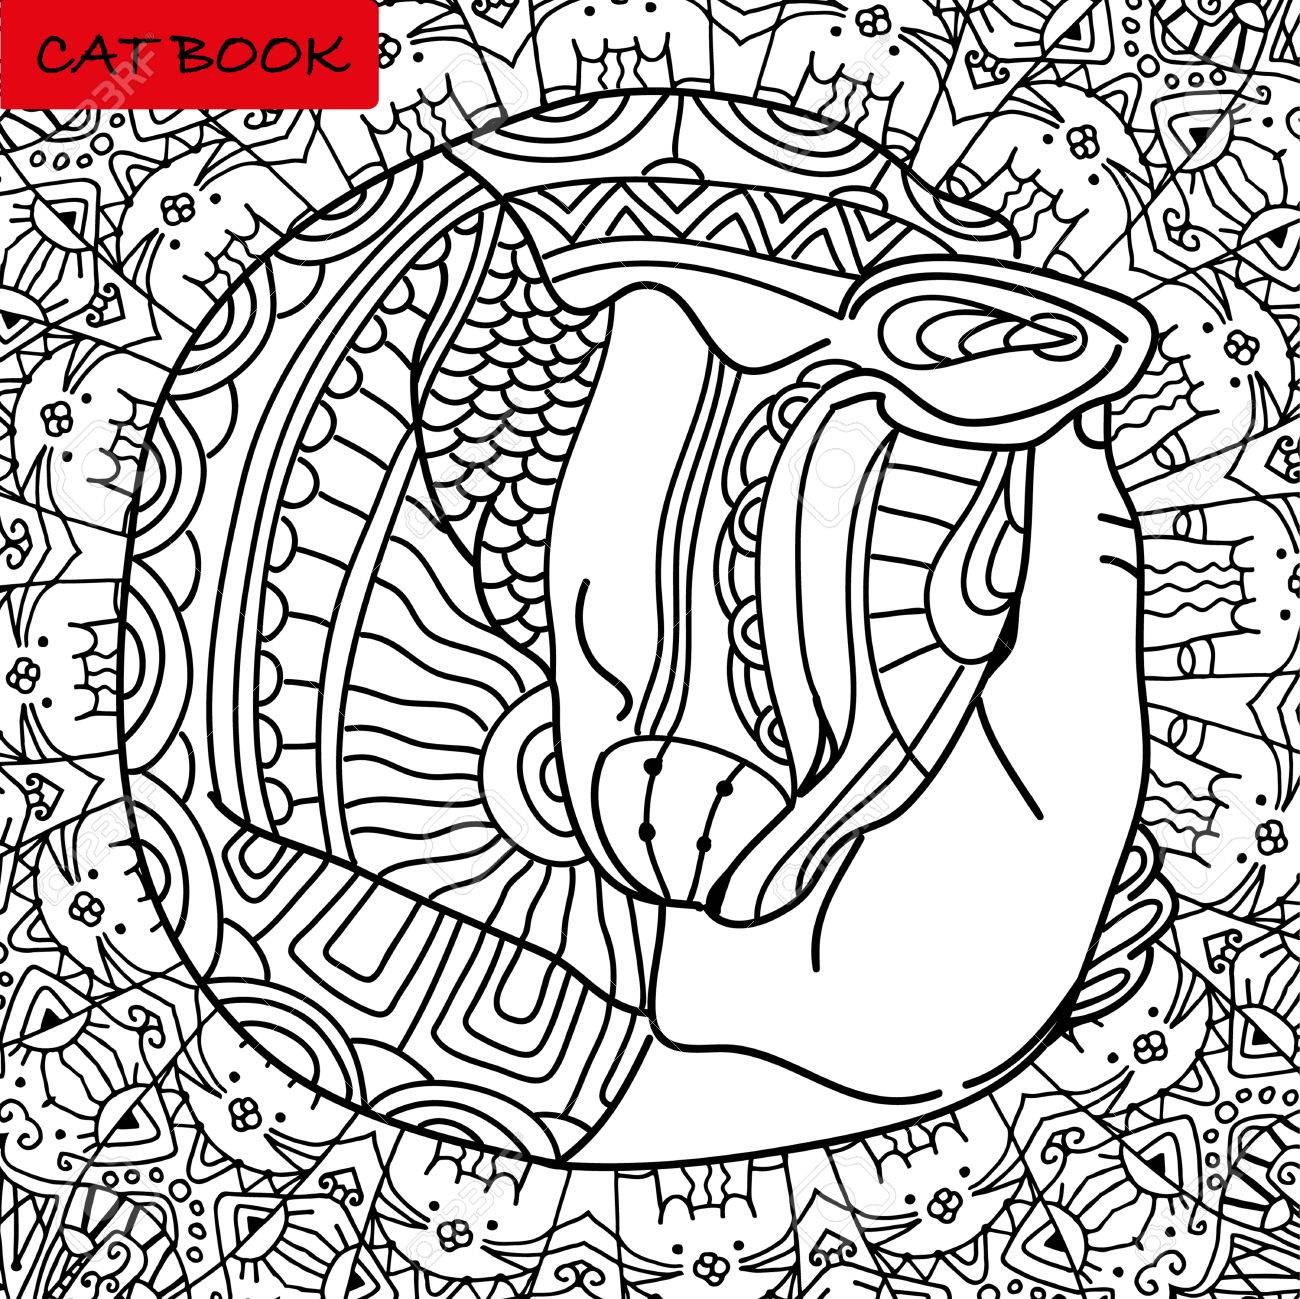 Mutual Love Cats Head In The Palm Of Your Hand Coloring Book Page For